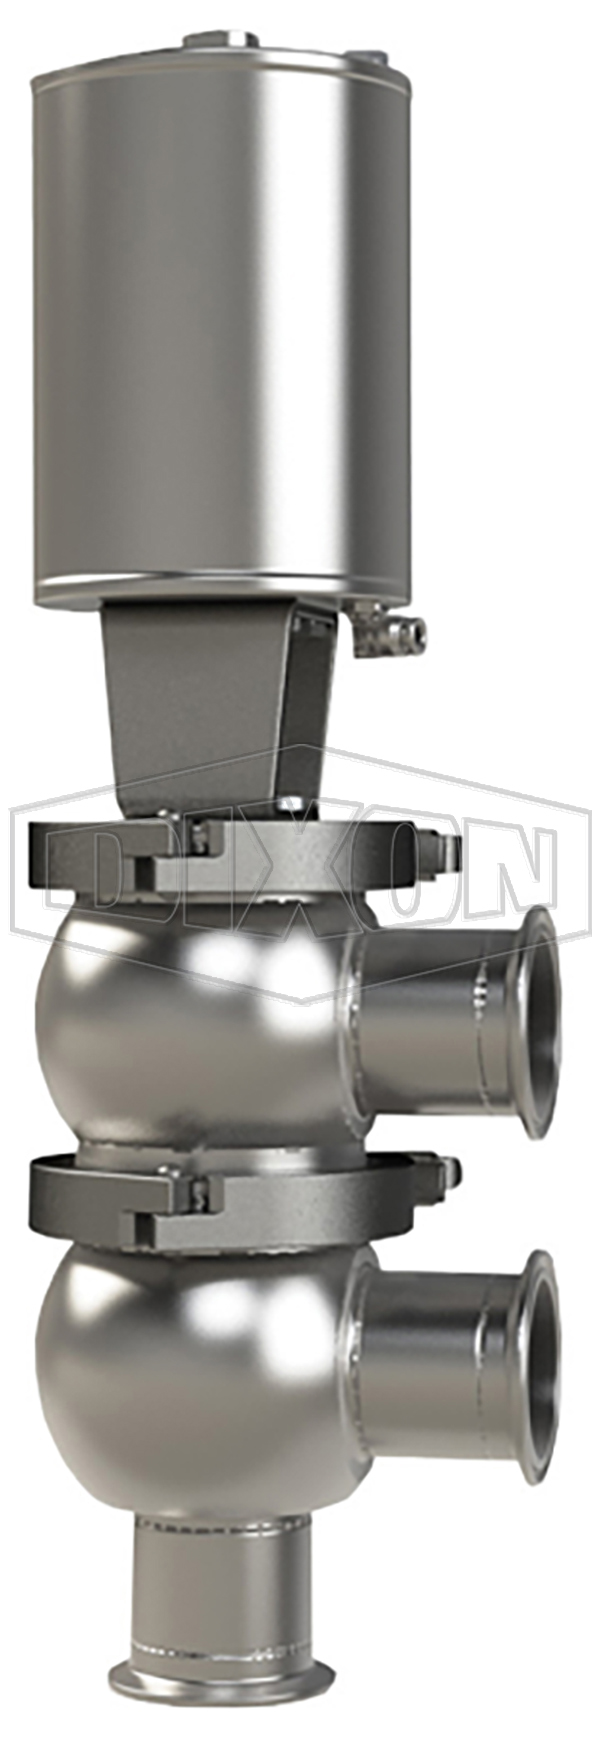 SSV Series Single Seat Valve, Divert F Body, Clamp, Spring Return Actuator (Air-To-Raise)